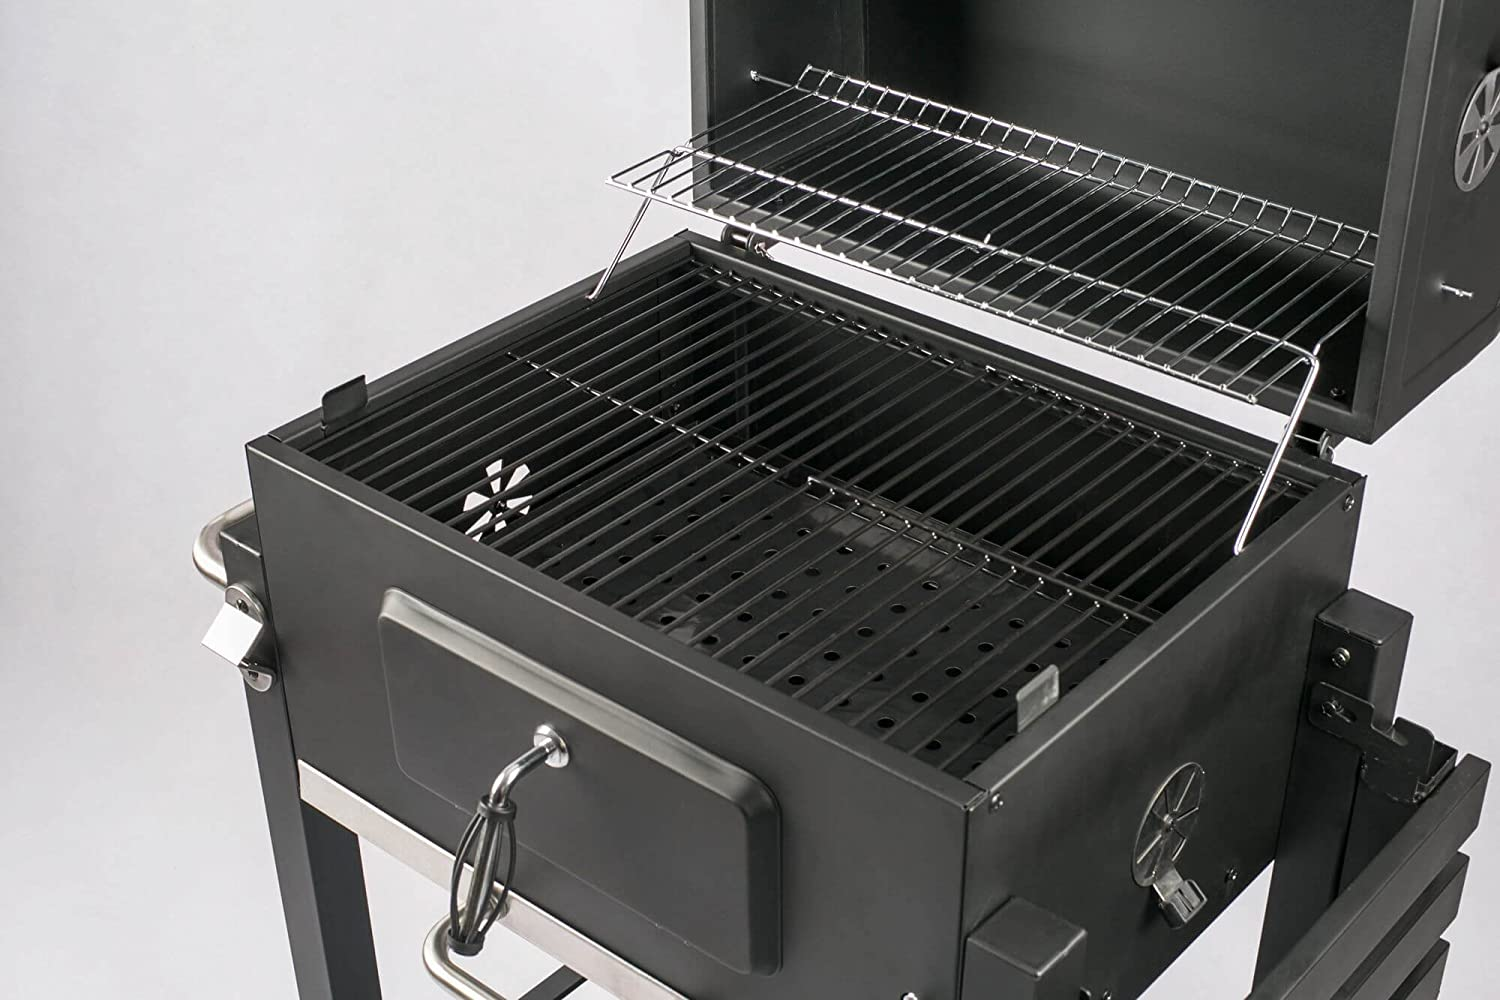 Brenna Holzkohlegrill Test : Mayer barbecue brenna holzkohlegrill grillwagen mhg pro